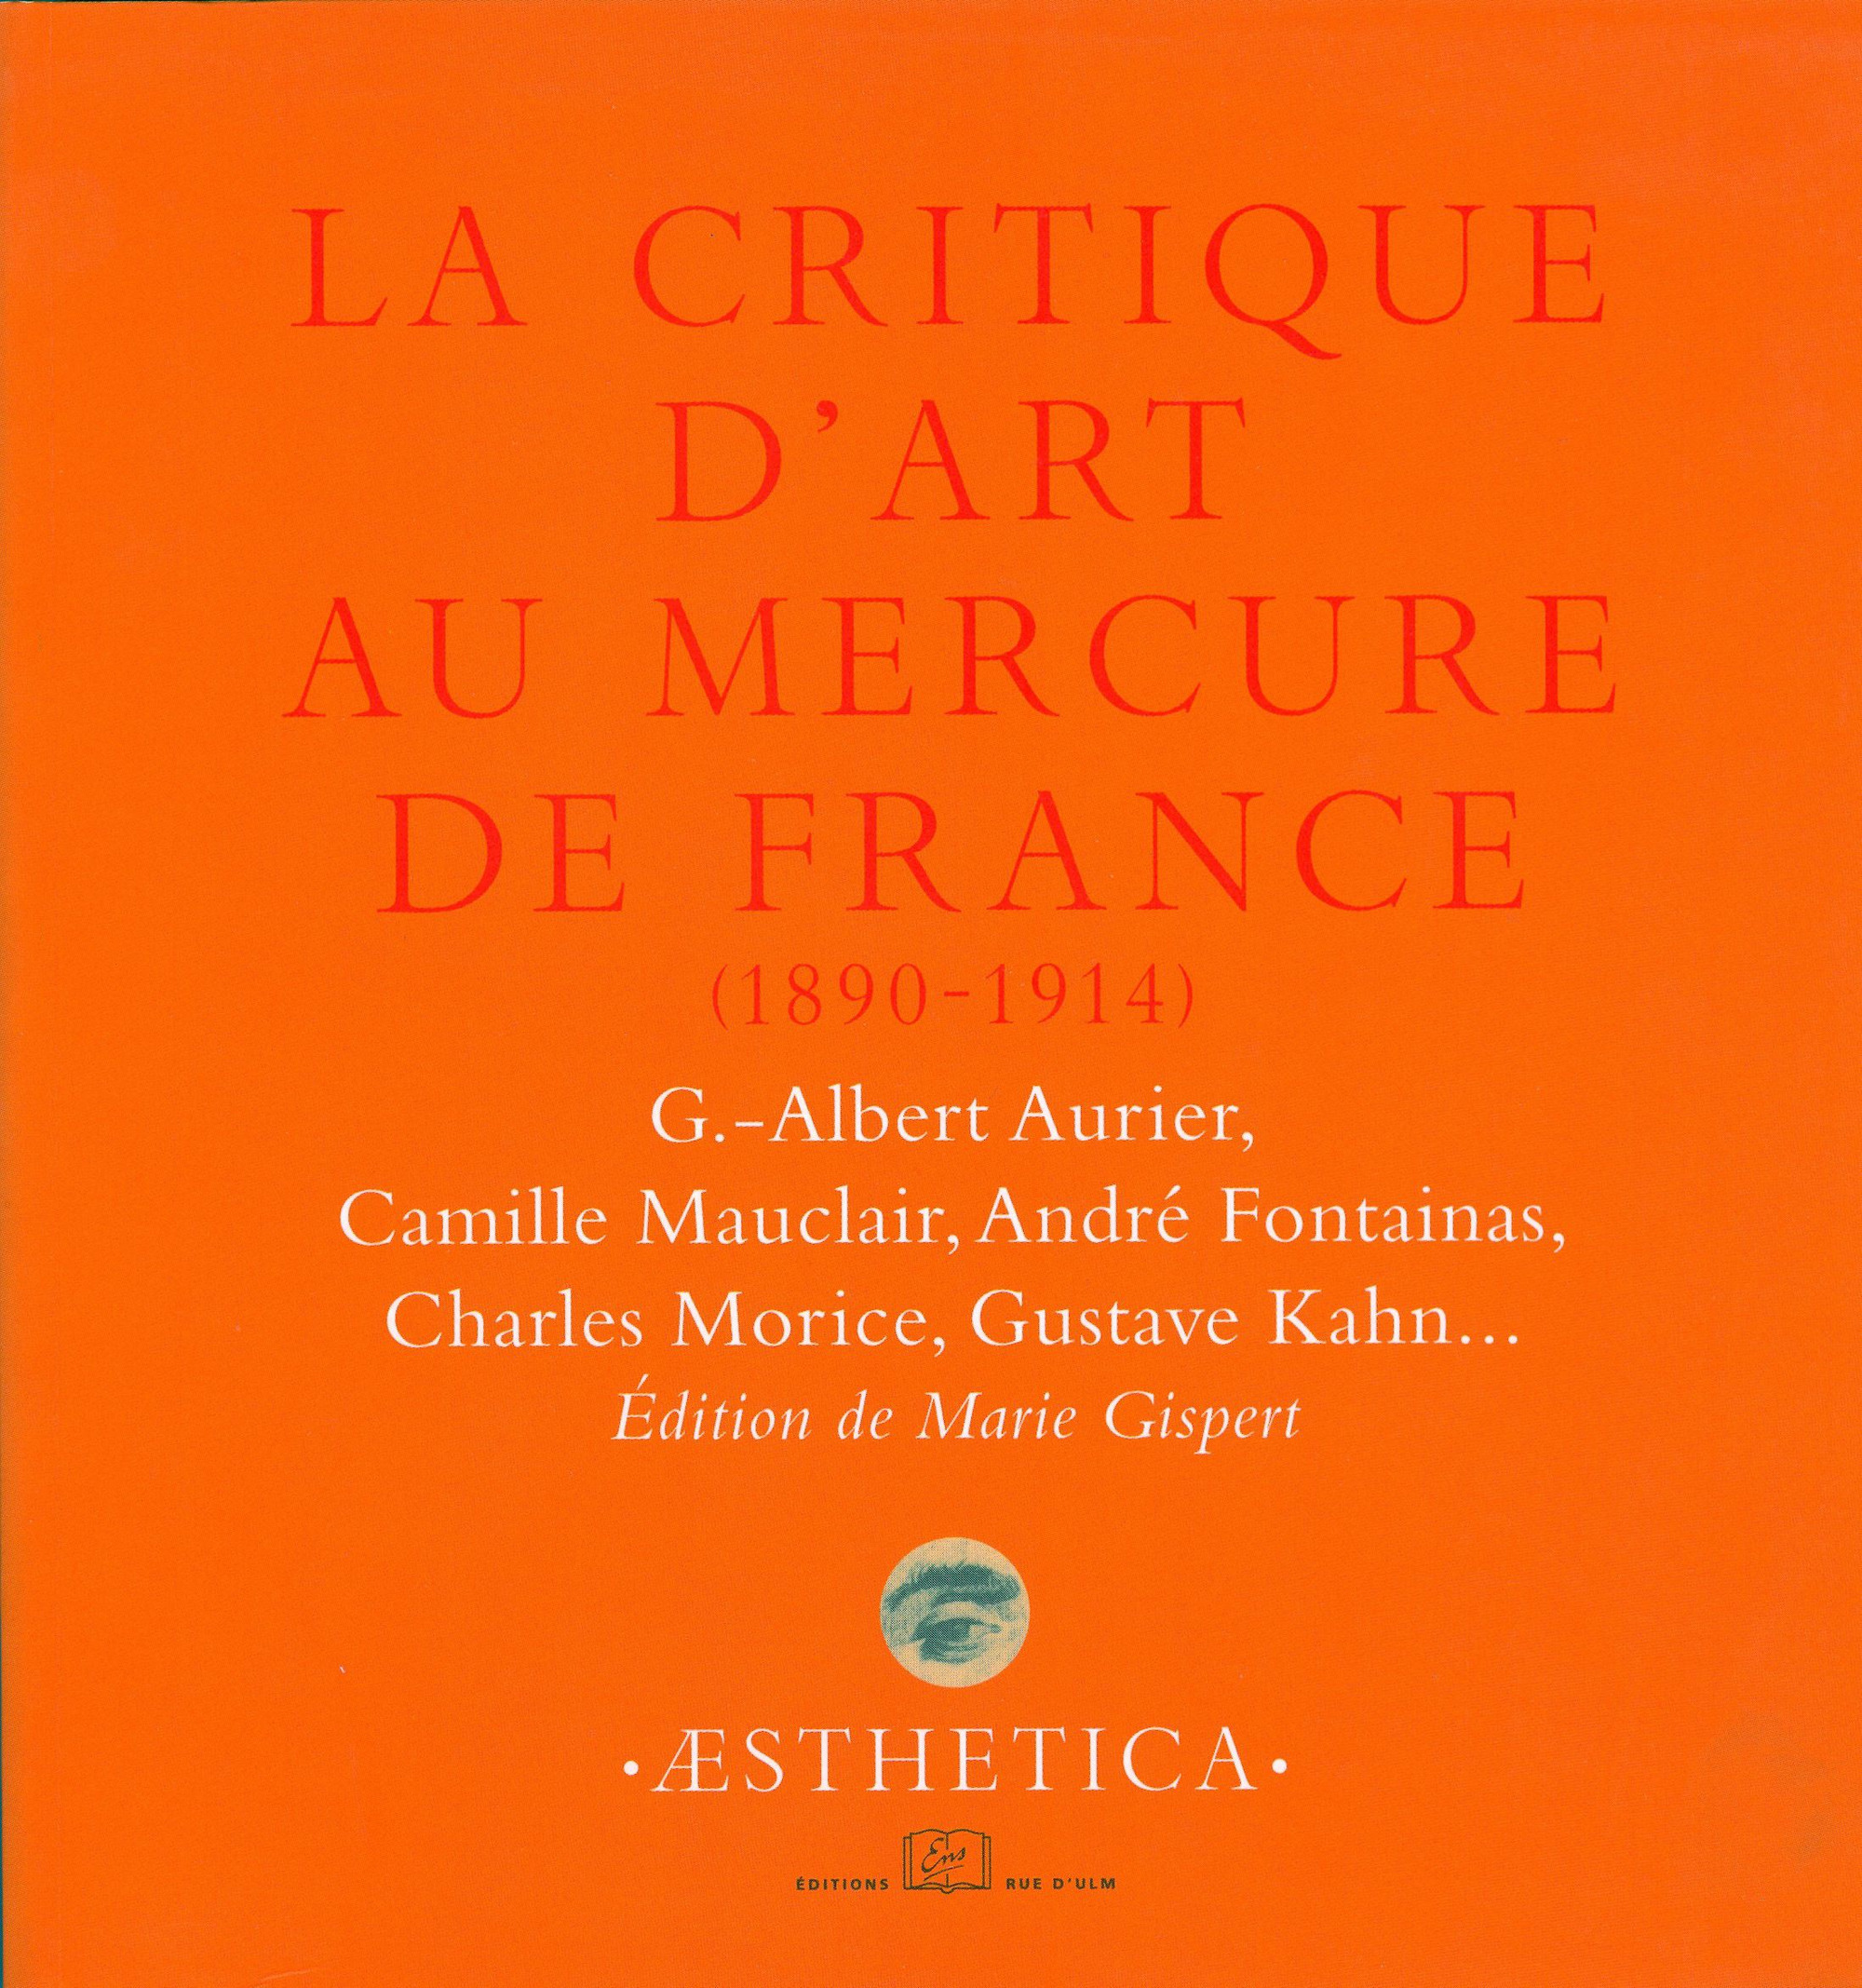 La critique d'art au Mercure de France (1890-1914)